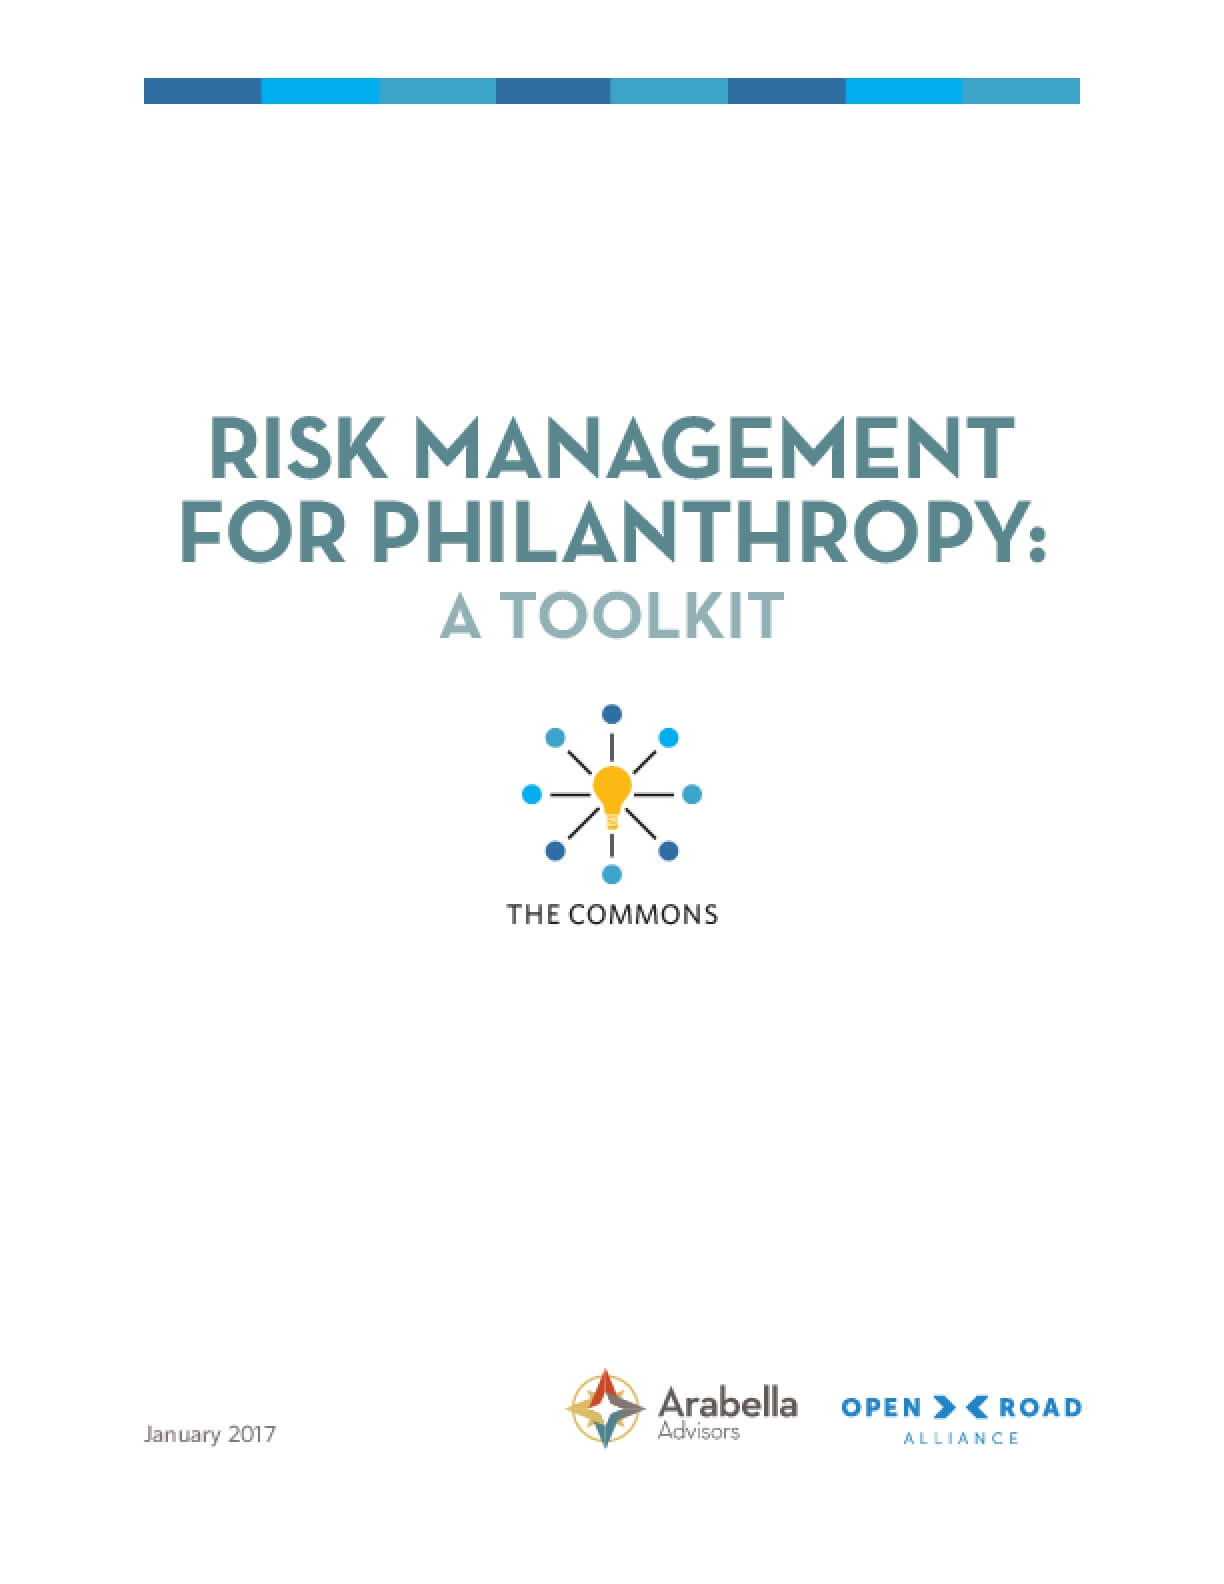 Risk Management for Philanthropy: A Toolkit